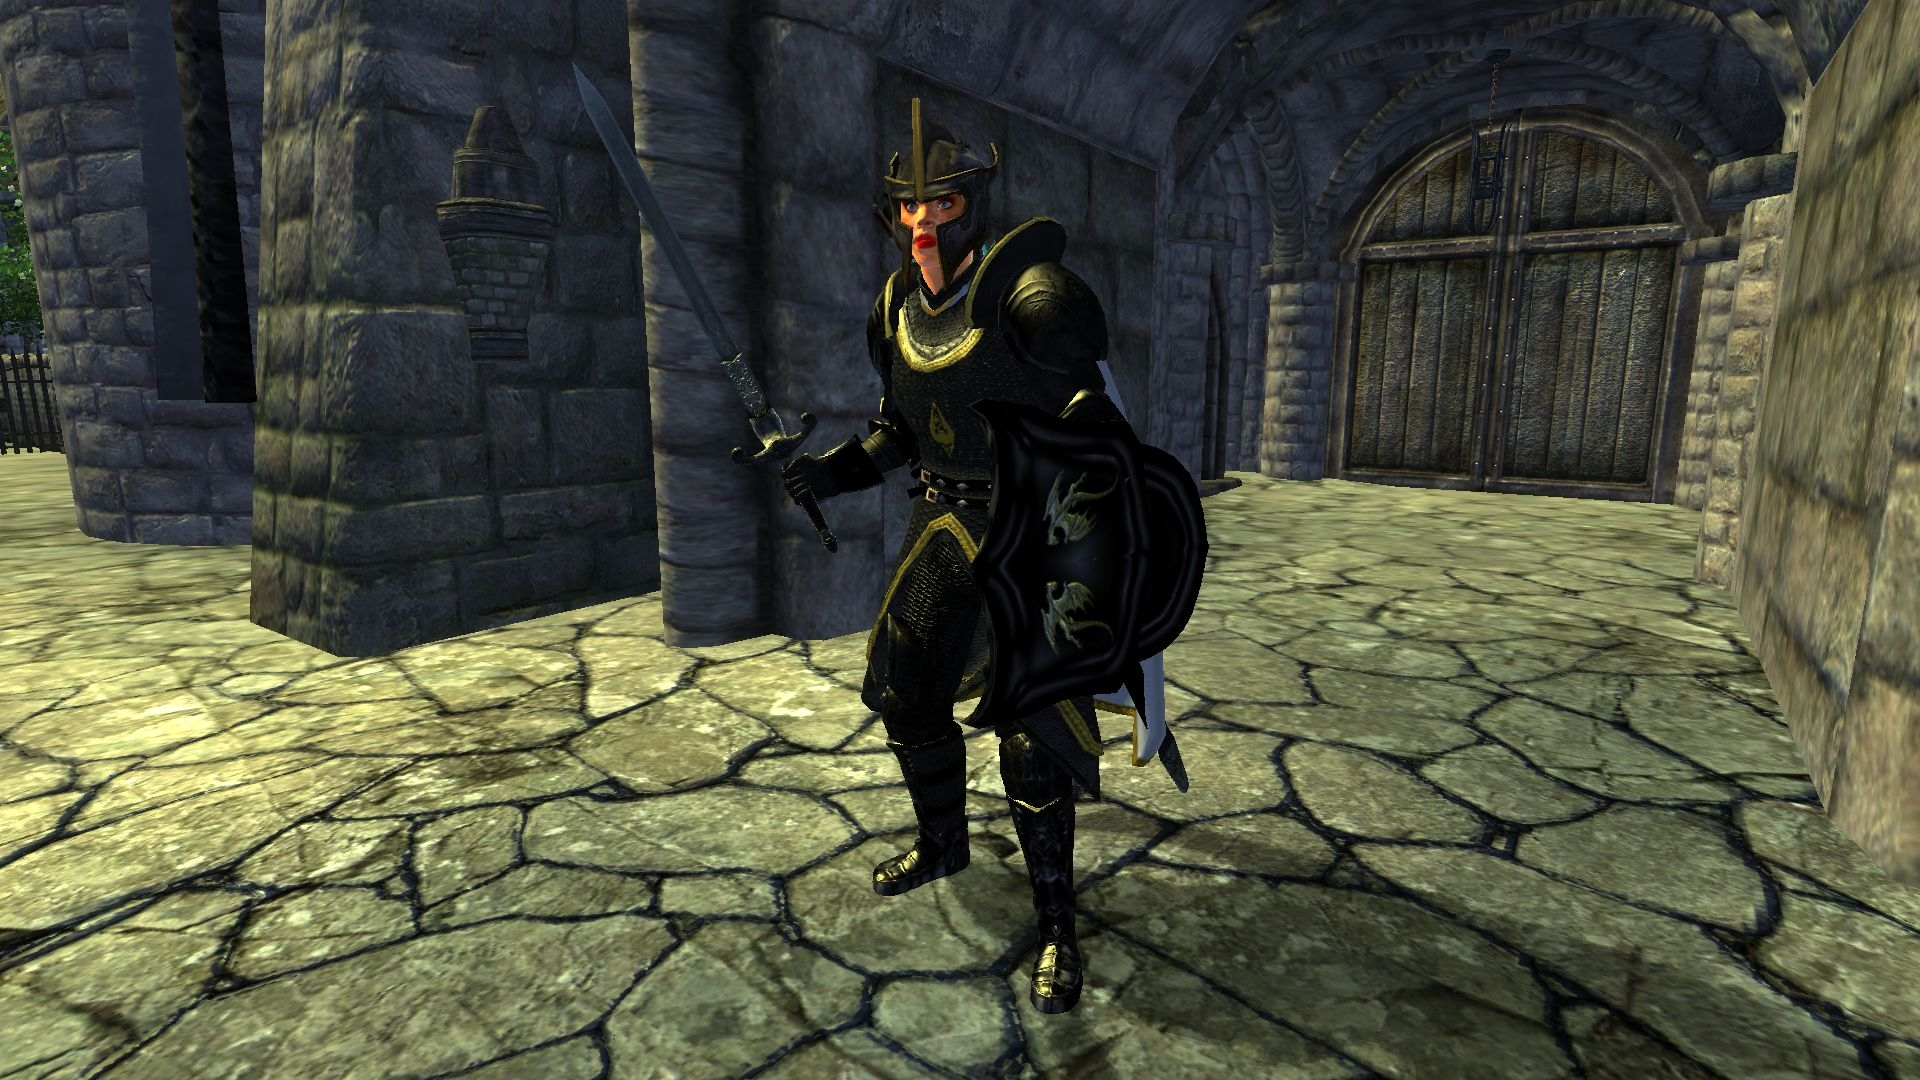 My Glenvar Guard Armor